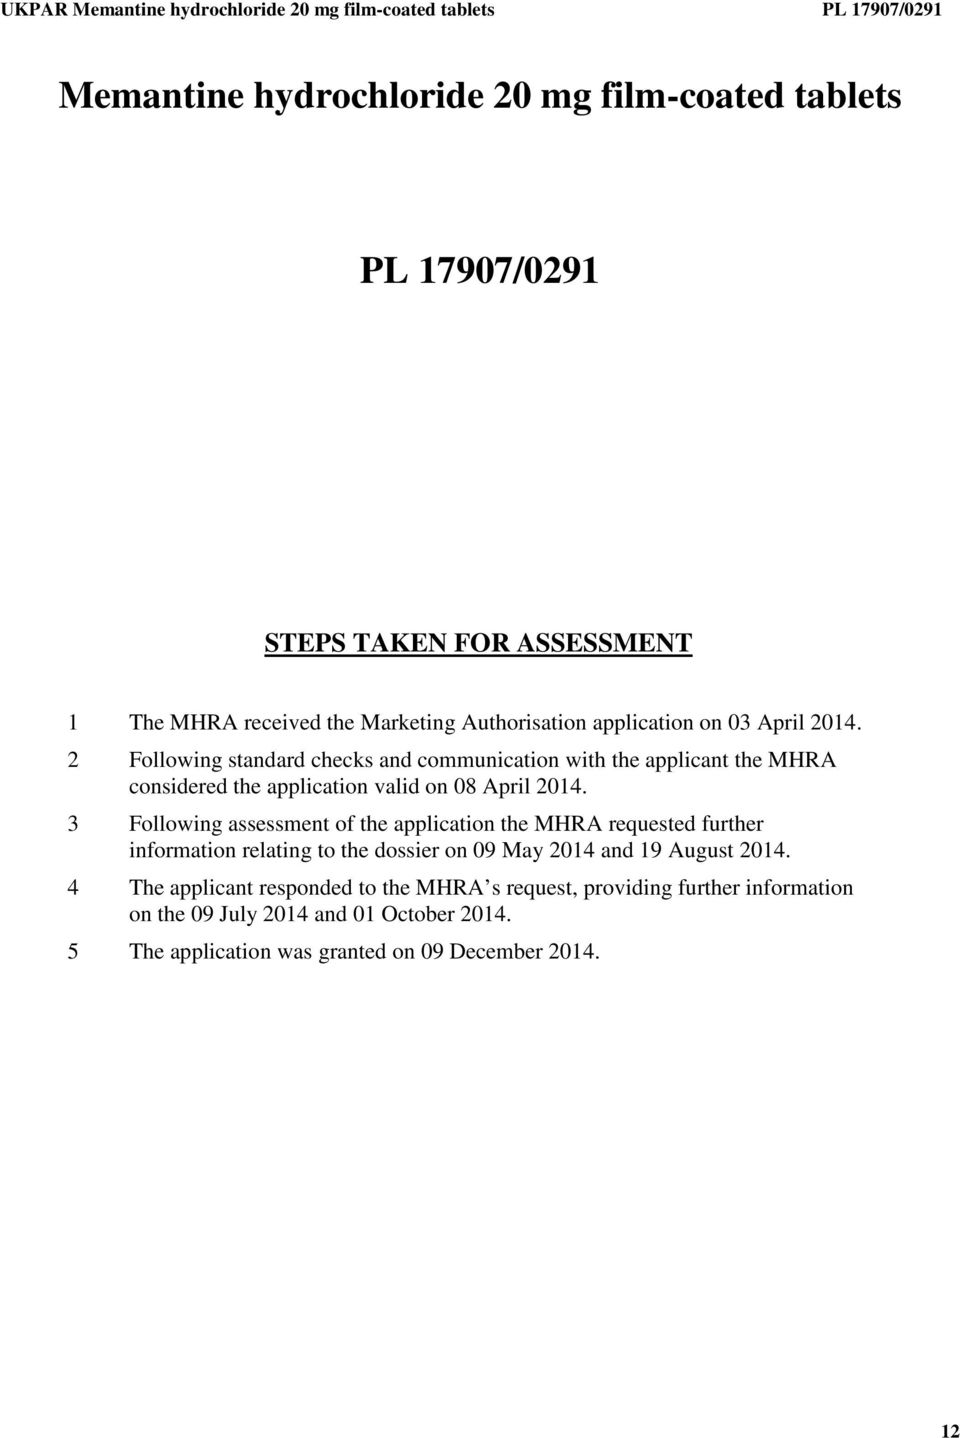 3 Following assessment of the application the MHRA requested further information relating to the dossier on 09 May 2014 and 19 August 2014.